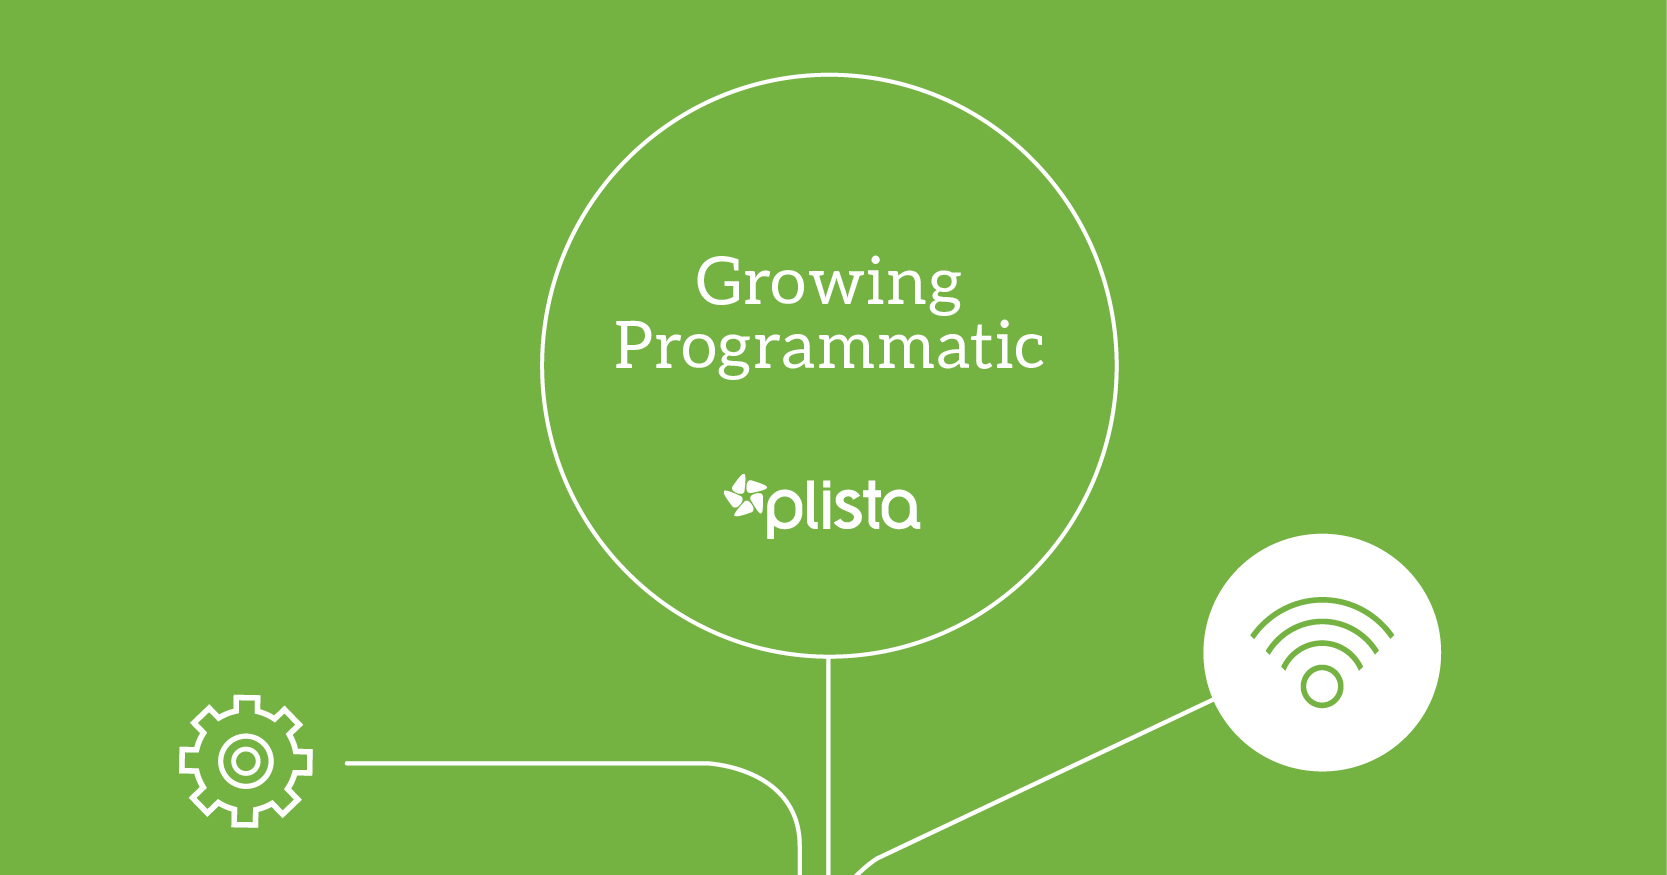 Growing Programmatic - The Future of Digital Advertising